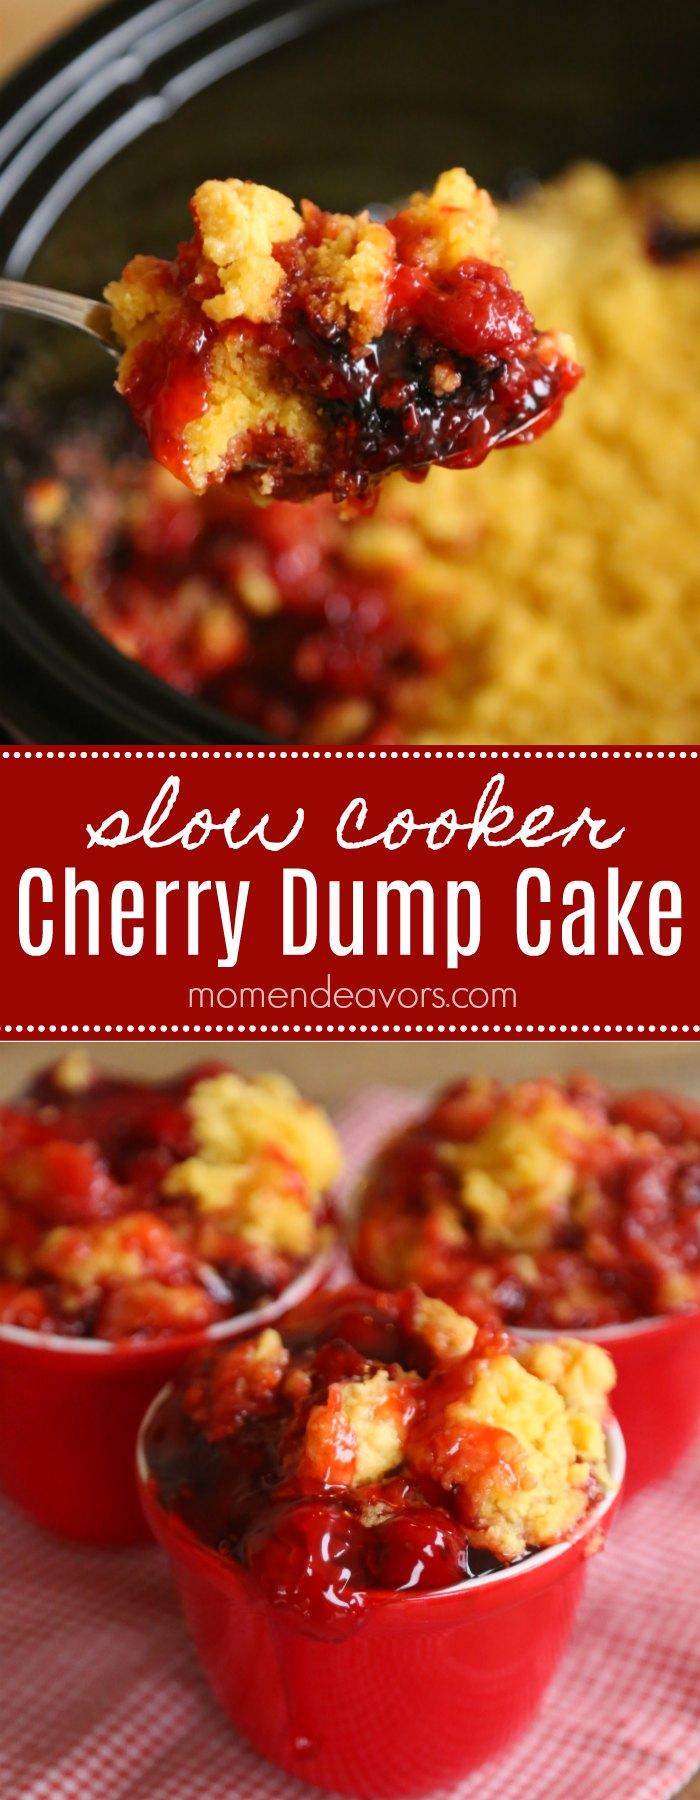 Slow Cooker Cherry Dump Cake Recipe